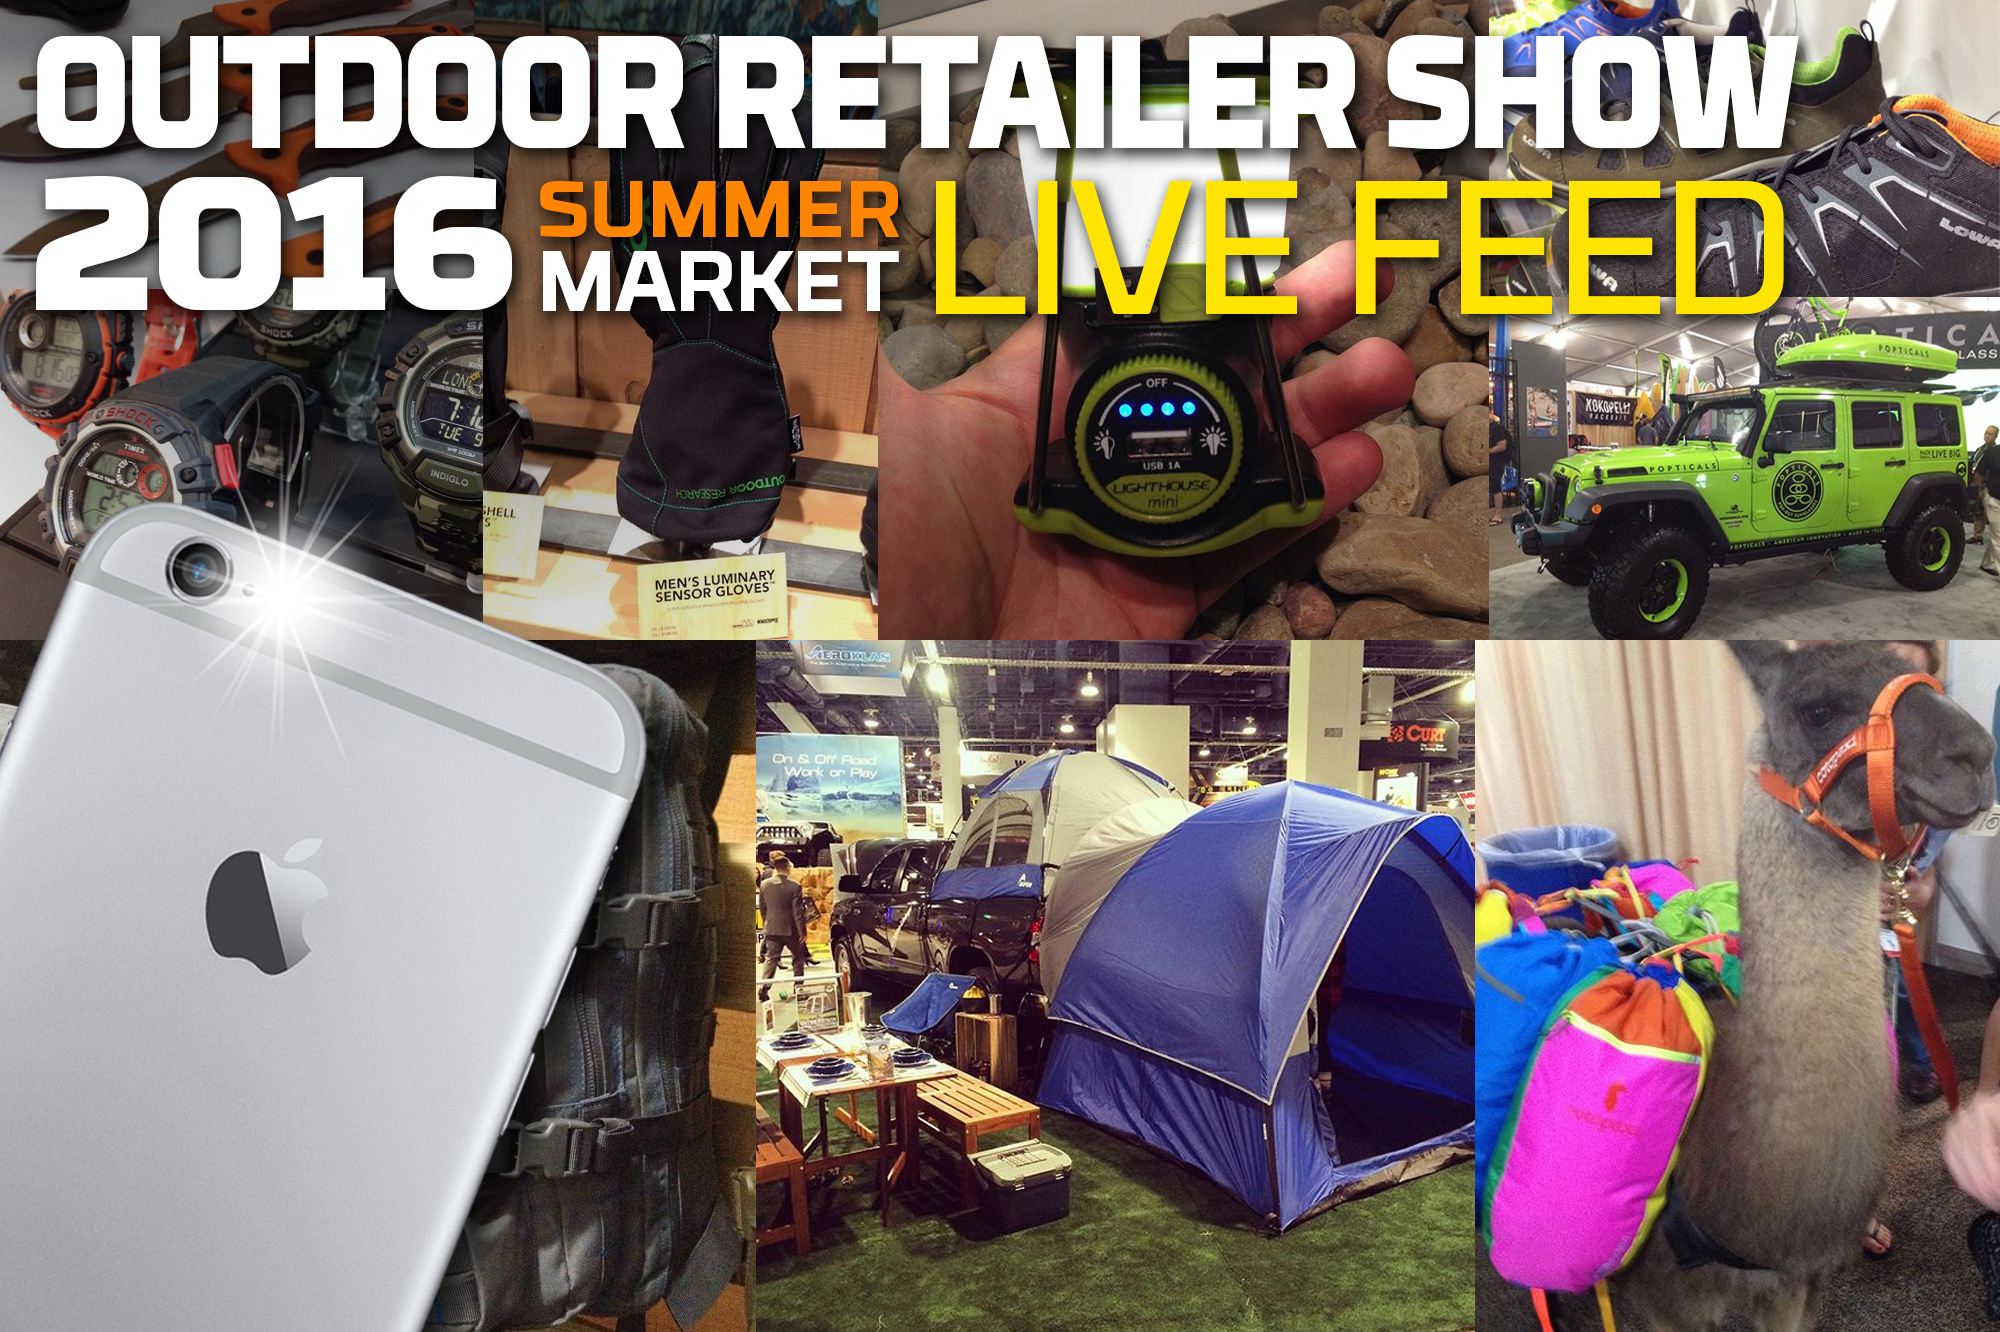 Outdoor Retailer Summer Market 2016 lead image